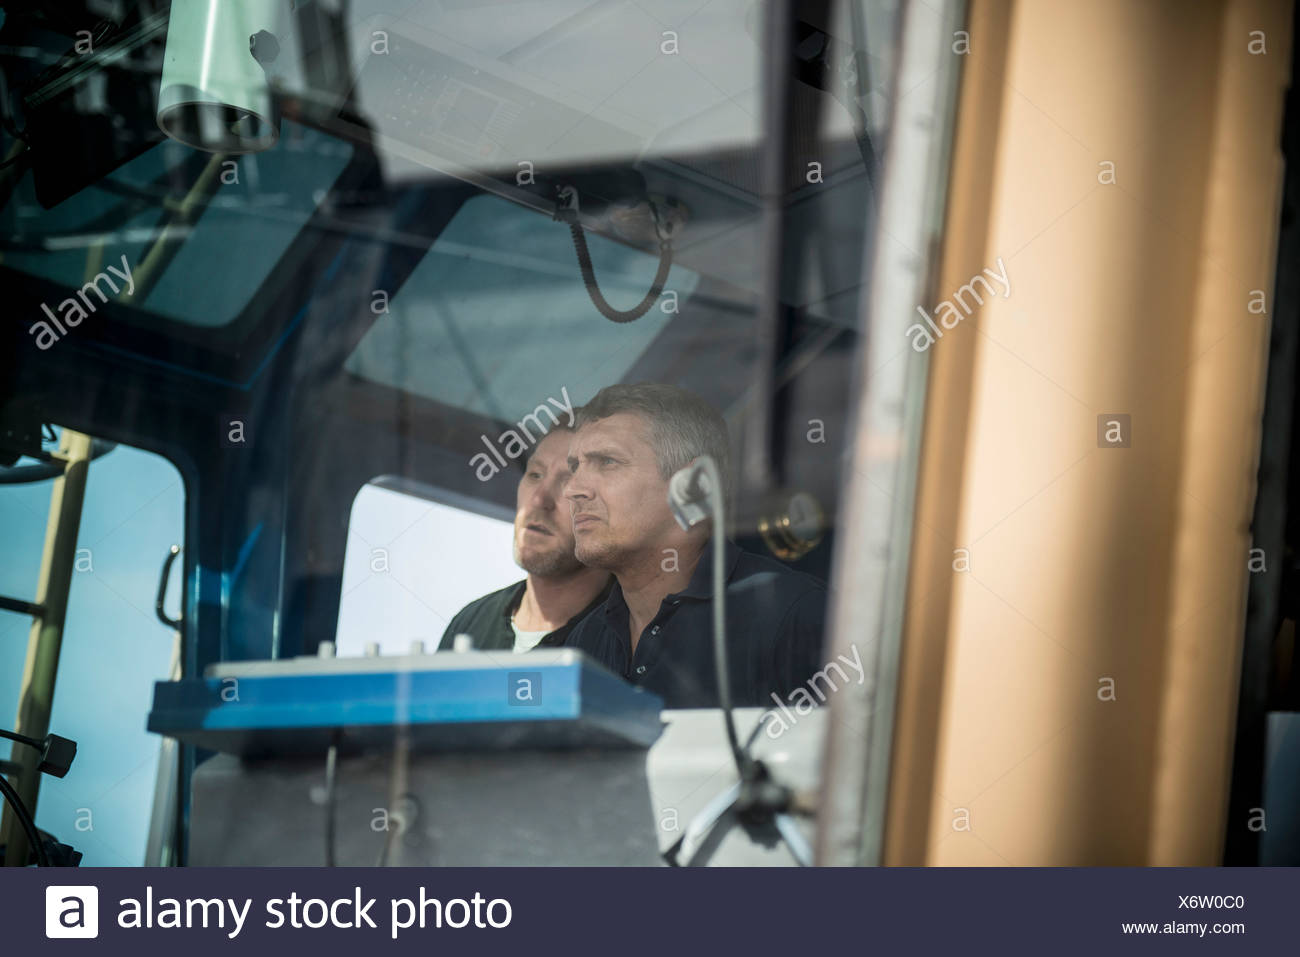 Sailors steering boat - Stock Image